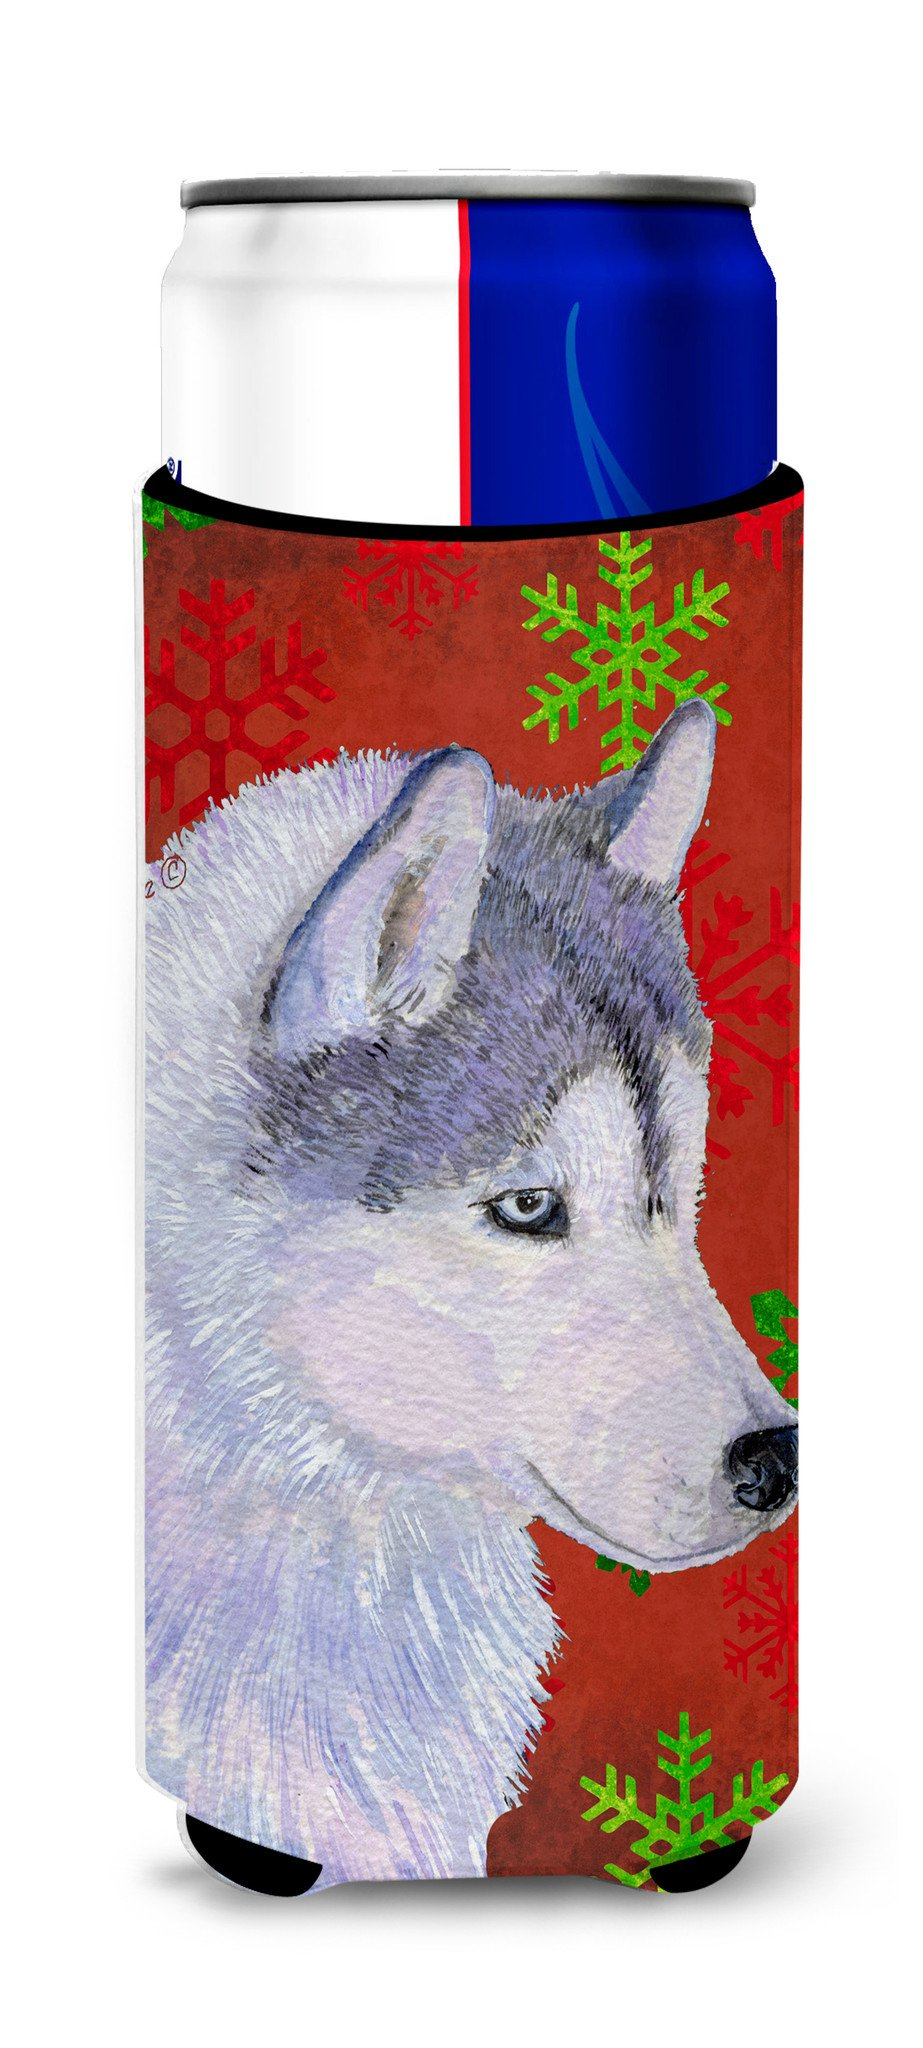 Siberian Husky Red Green Snowflake Holiday Christmas Ultra Beverage Insulators for slim cans SS4671MUK by Caroline's Treasures